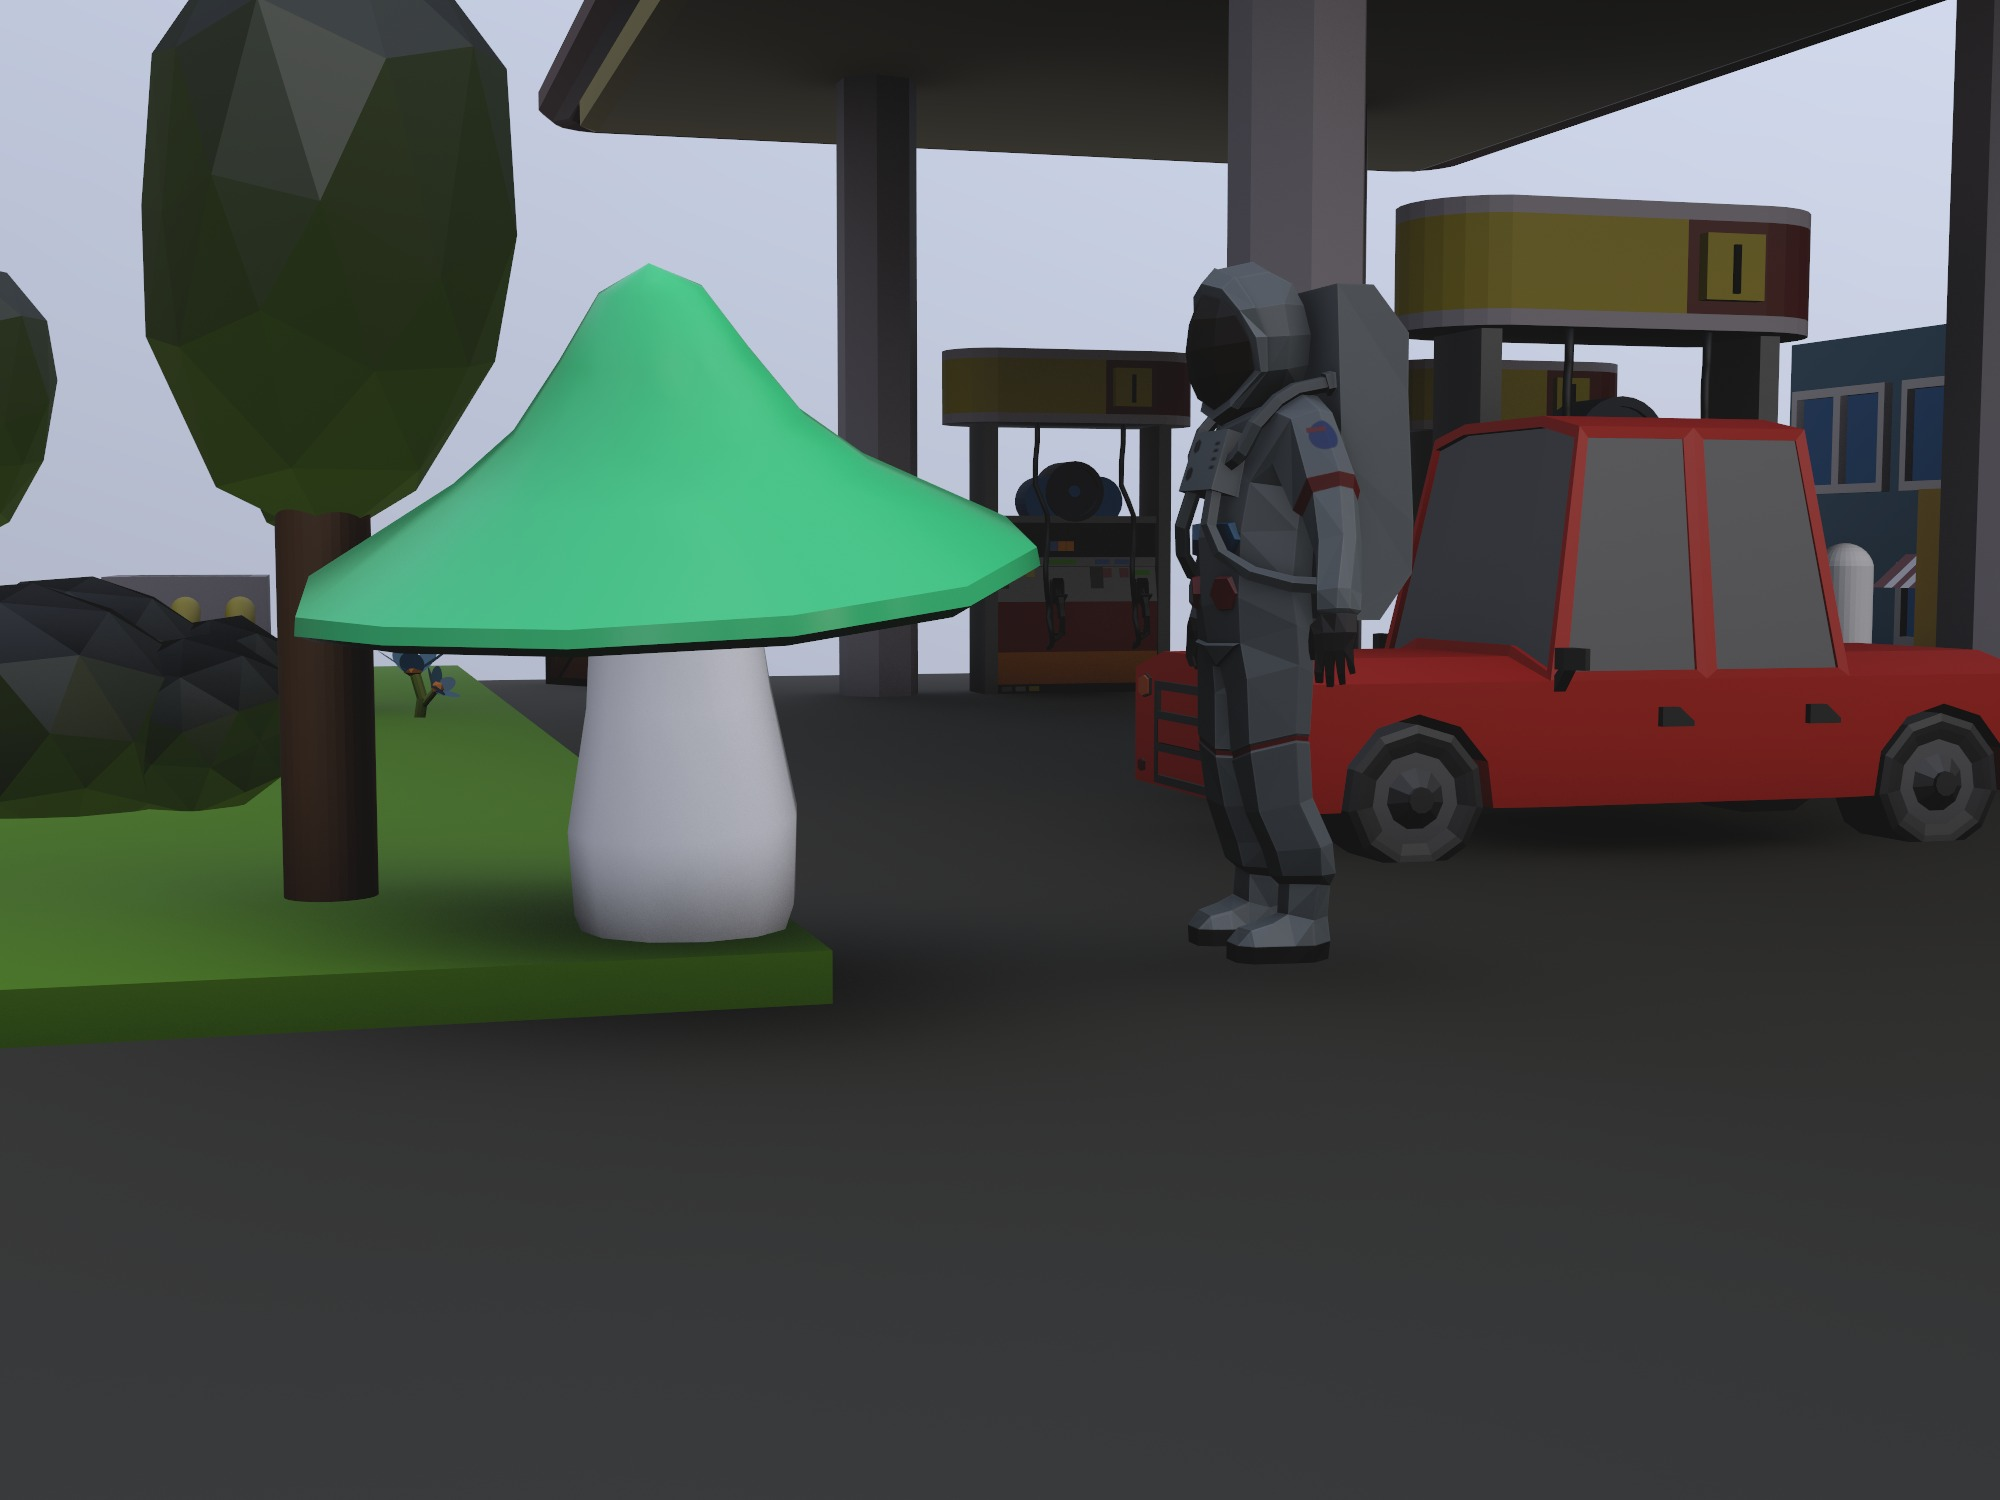 astronaut at a gas station - 3D design by Hristo Bakovski on Dec 12, 2018